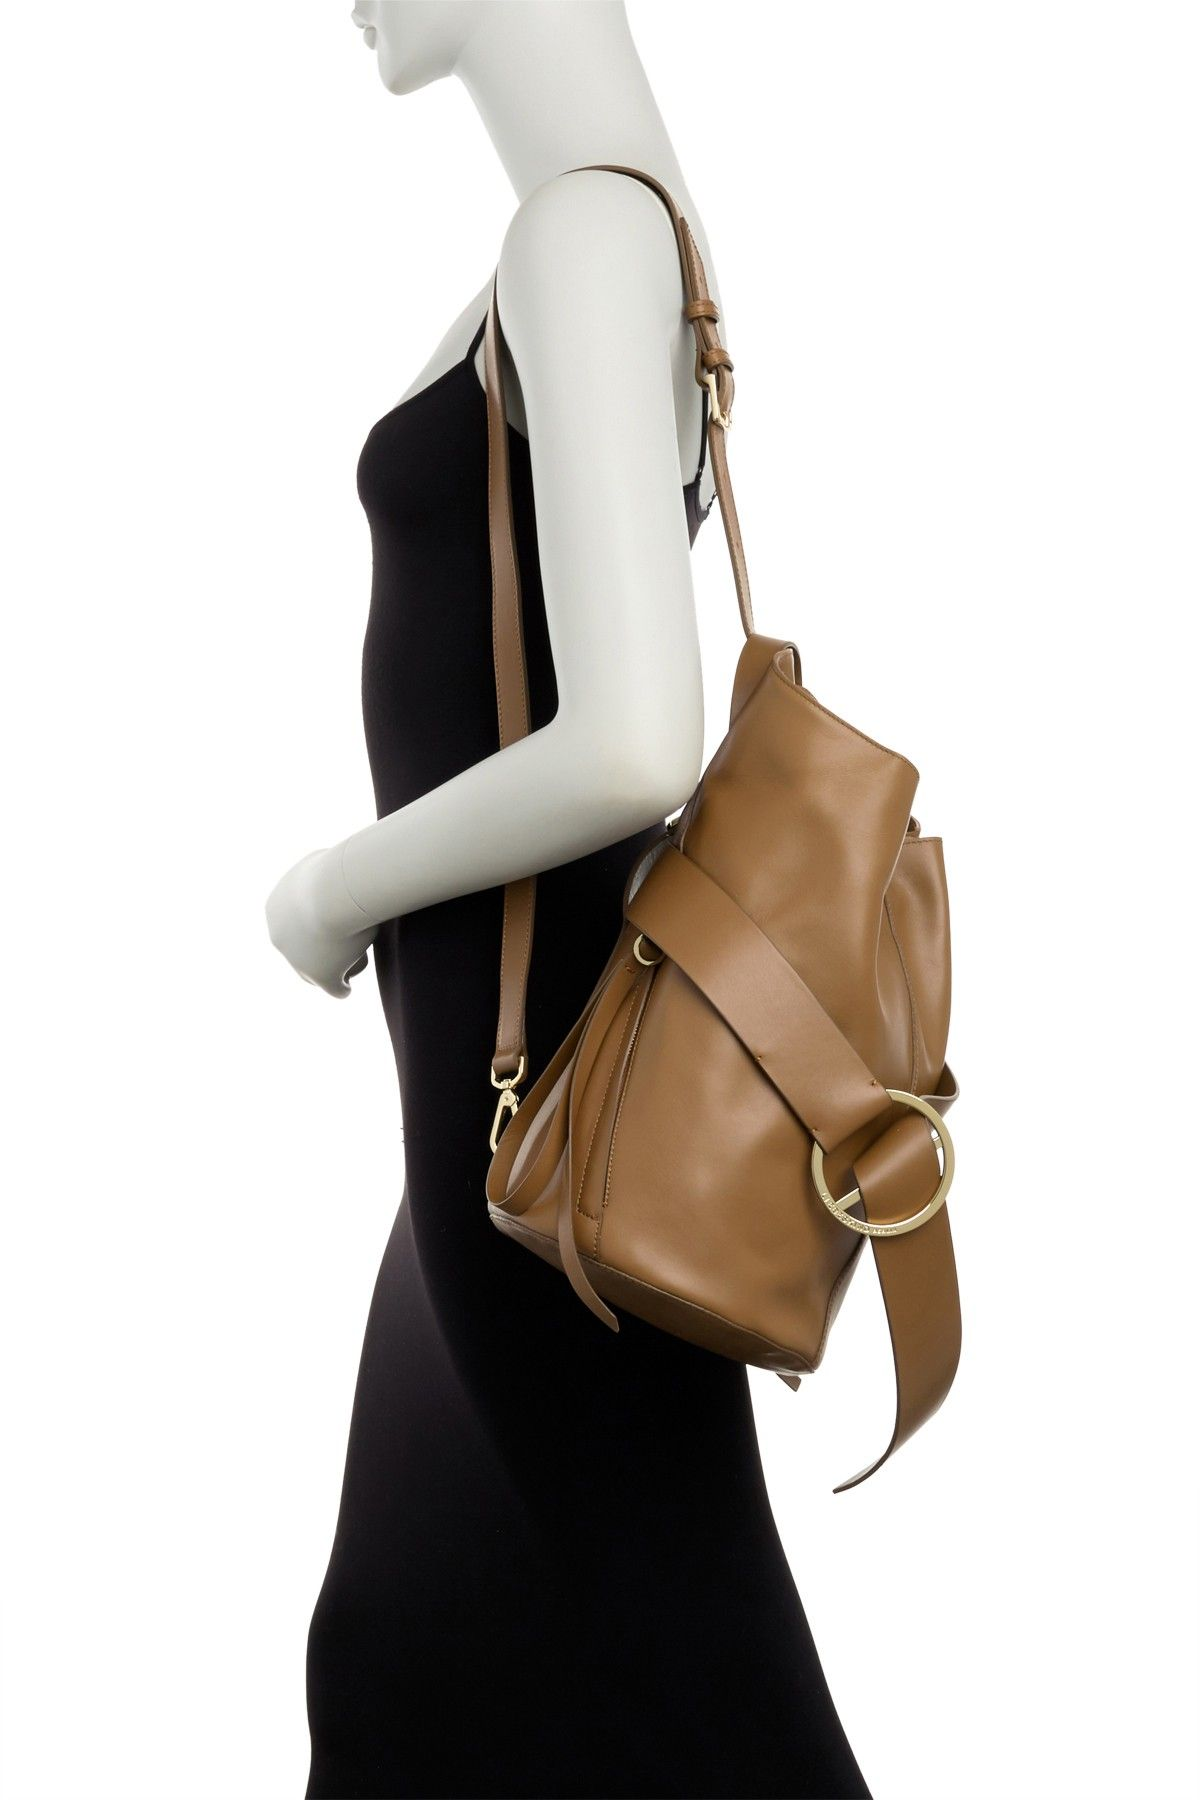 dd84ba3114 Medium Convertible Nappa Leather Shoulder Bag by Liebeskind Berlin on  @nordstrom_rack